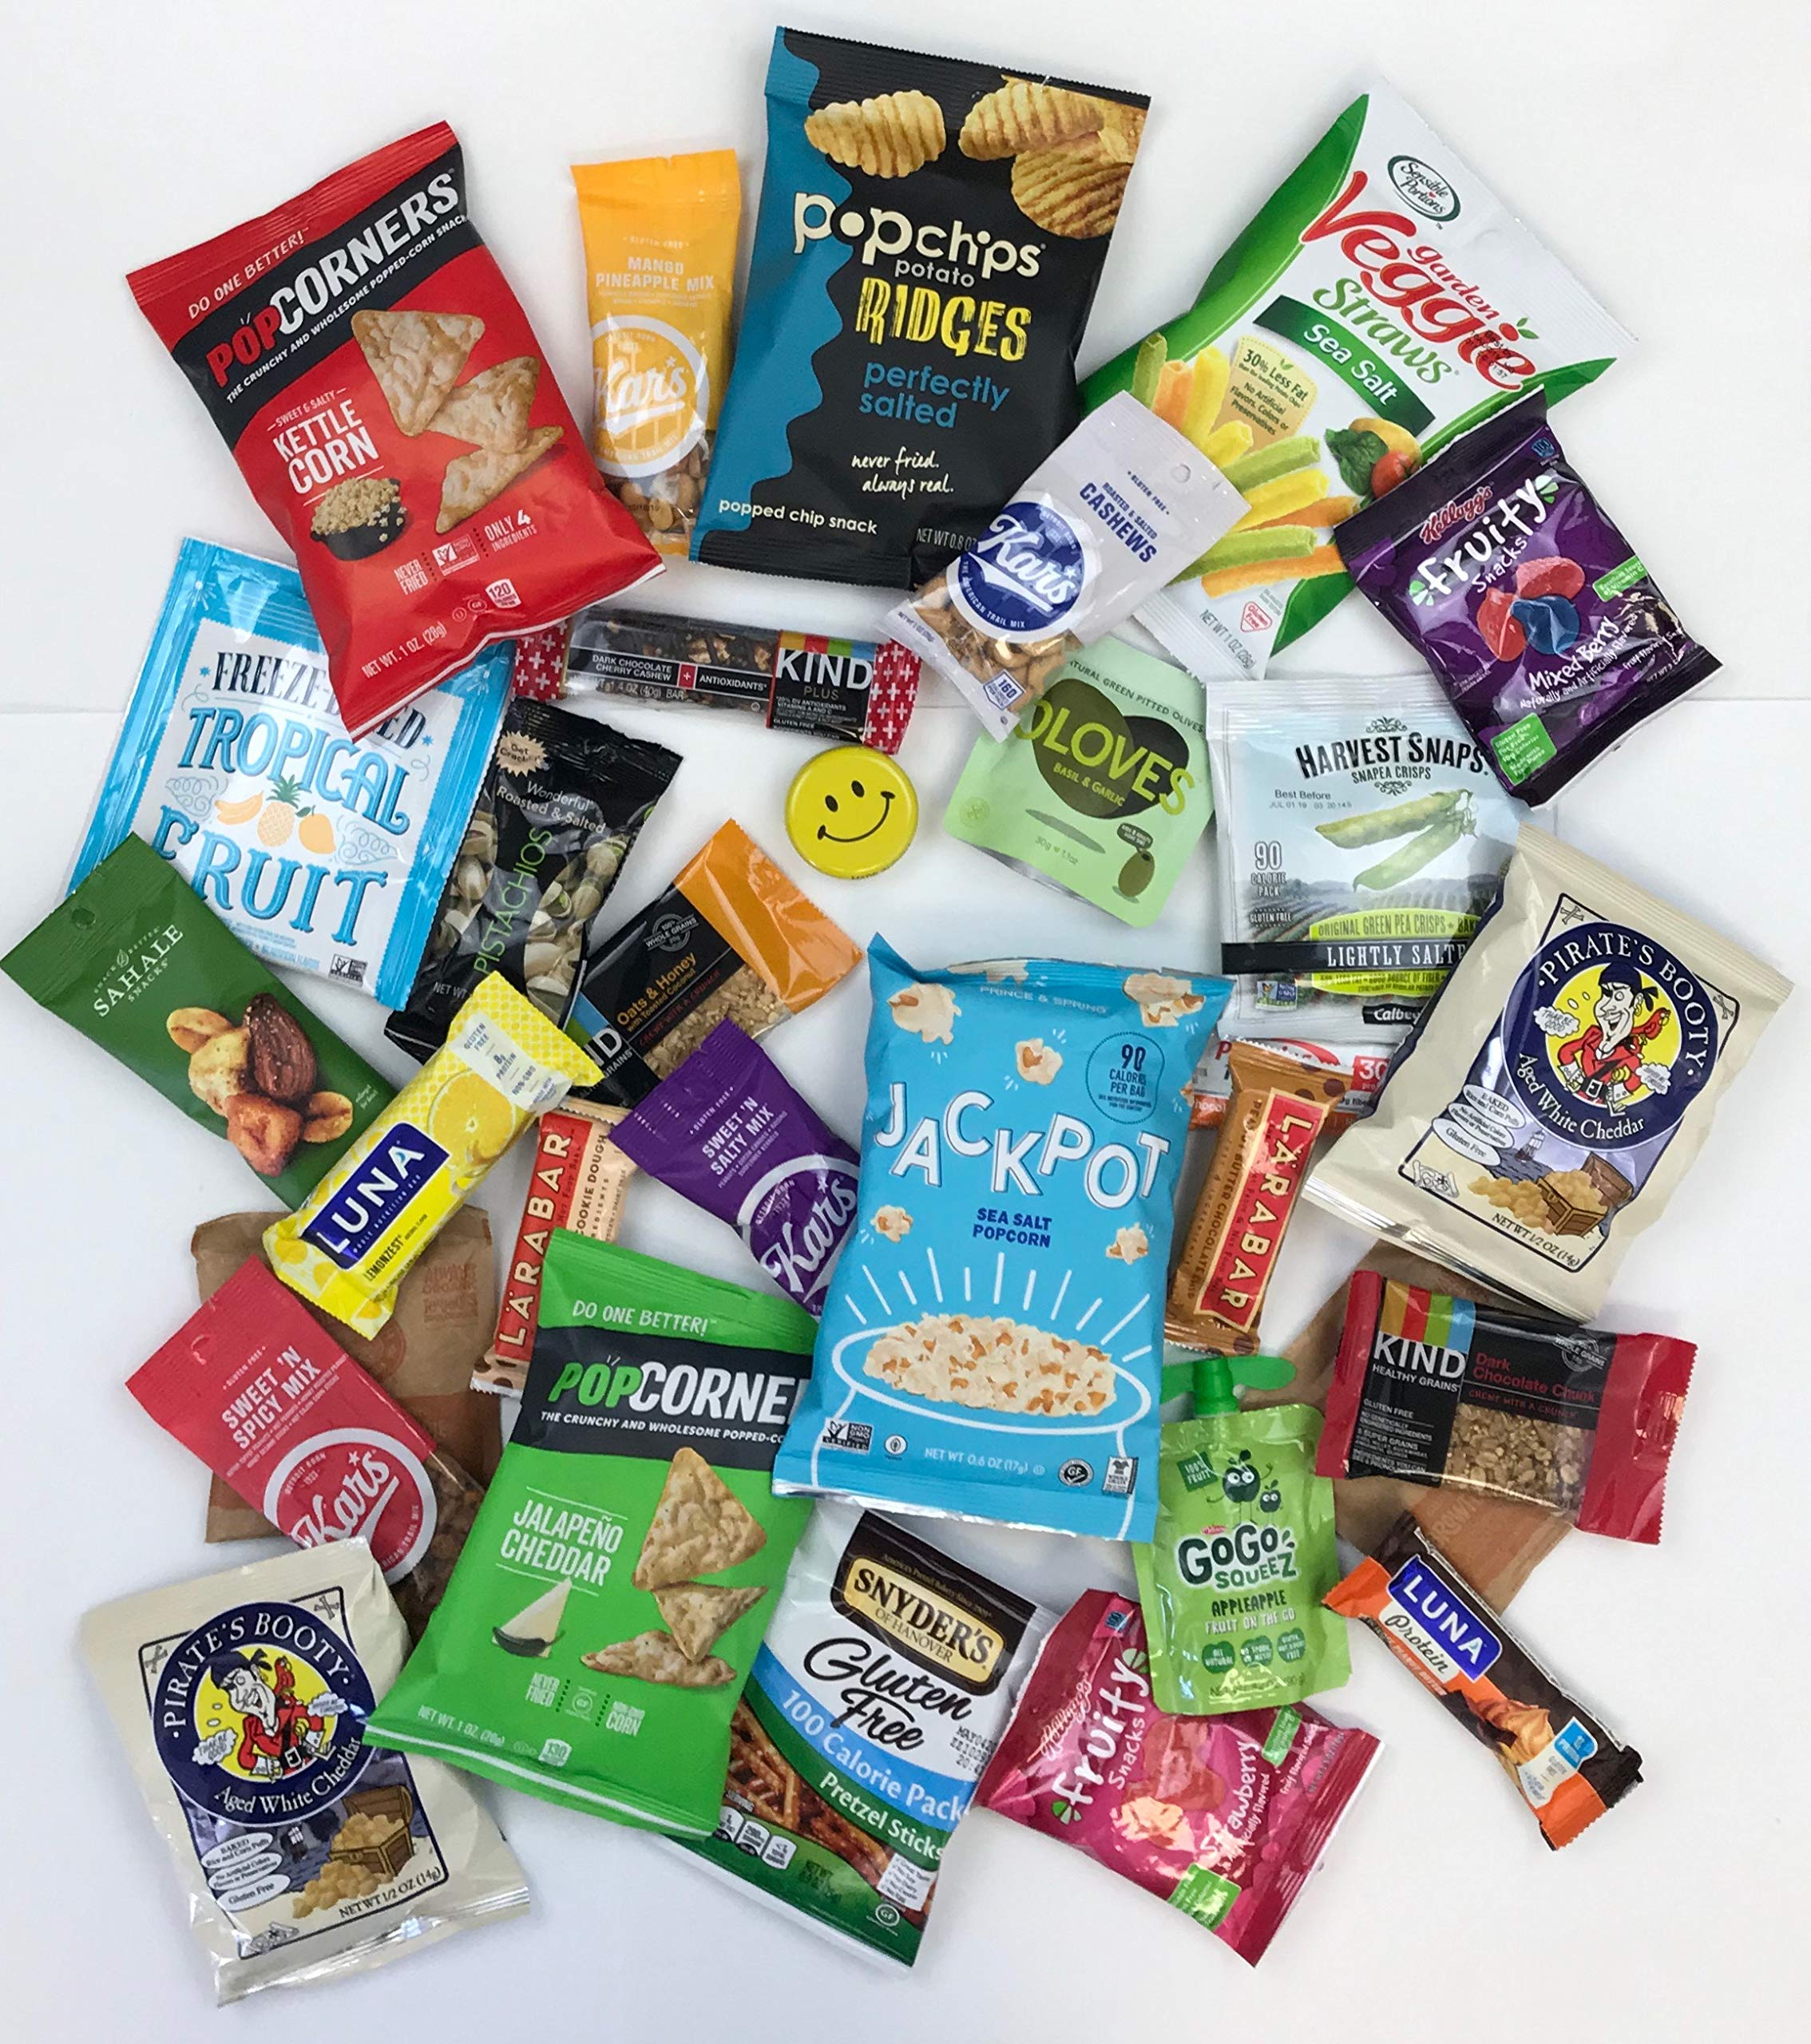 Premium Snacks Variety Pack Care Package - Huge 100 Count - the Perfect Gift Box for Office, College Students, Camp, Military - Individually Wrapped Chips, Cookies, Candy, More by SmallTown Table (Image #7)